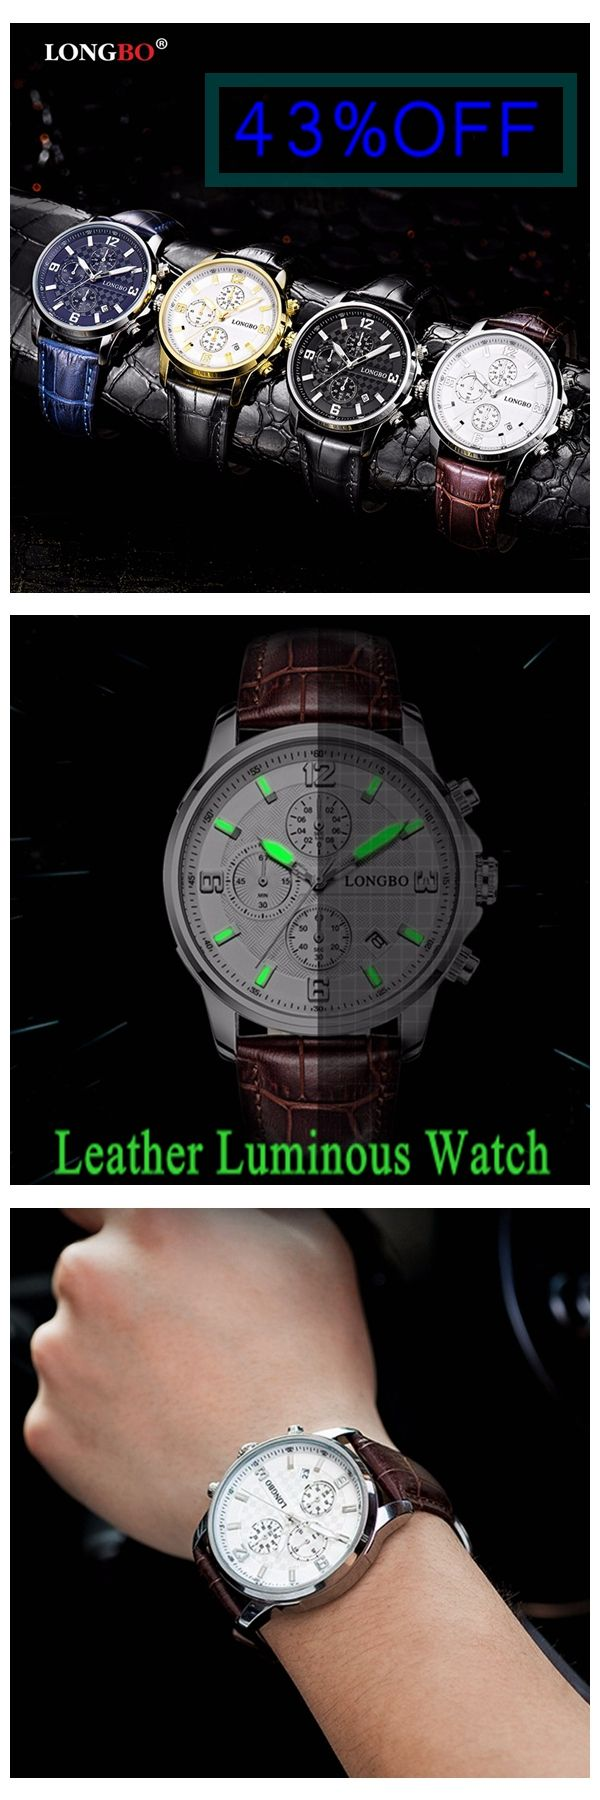 [Newchic Online Shopping] 43%OFF LONGBO Waterproof Watches | Luminous Watches | Sports Watches | Fashion Watches | Stainless Steel Watches | Leather Watches